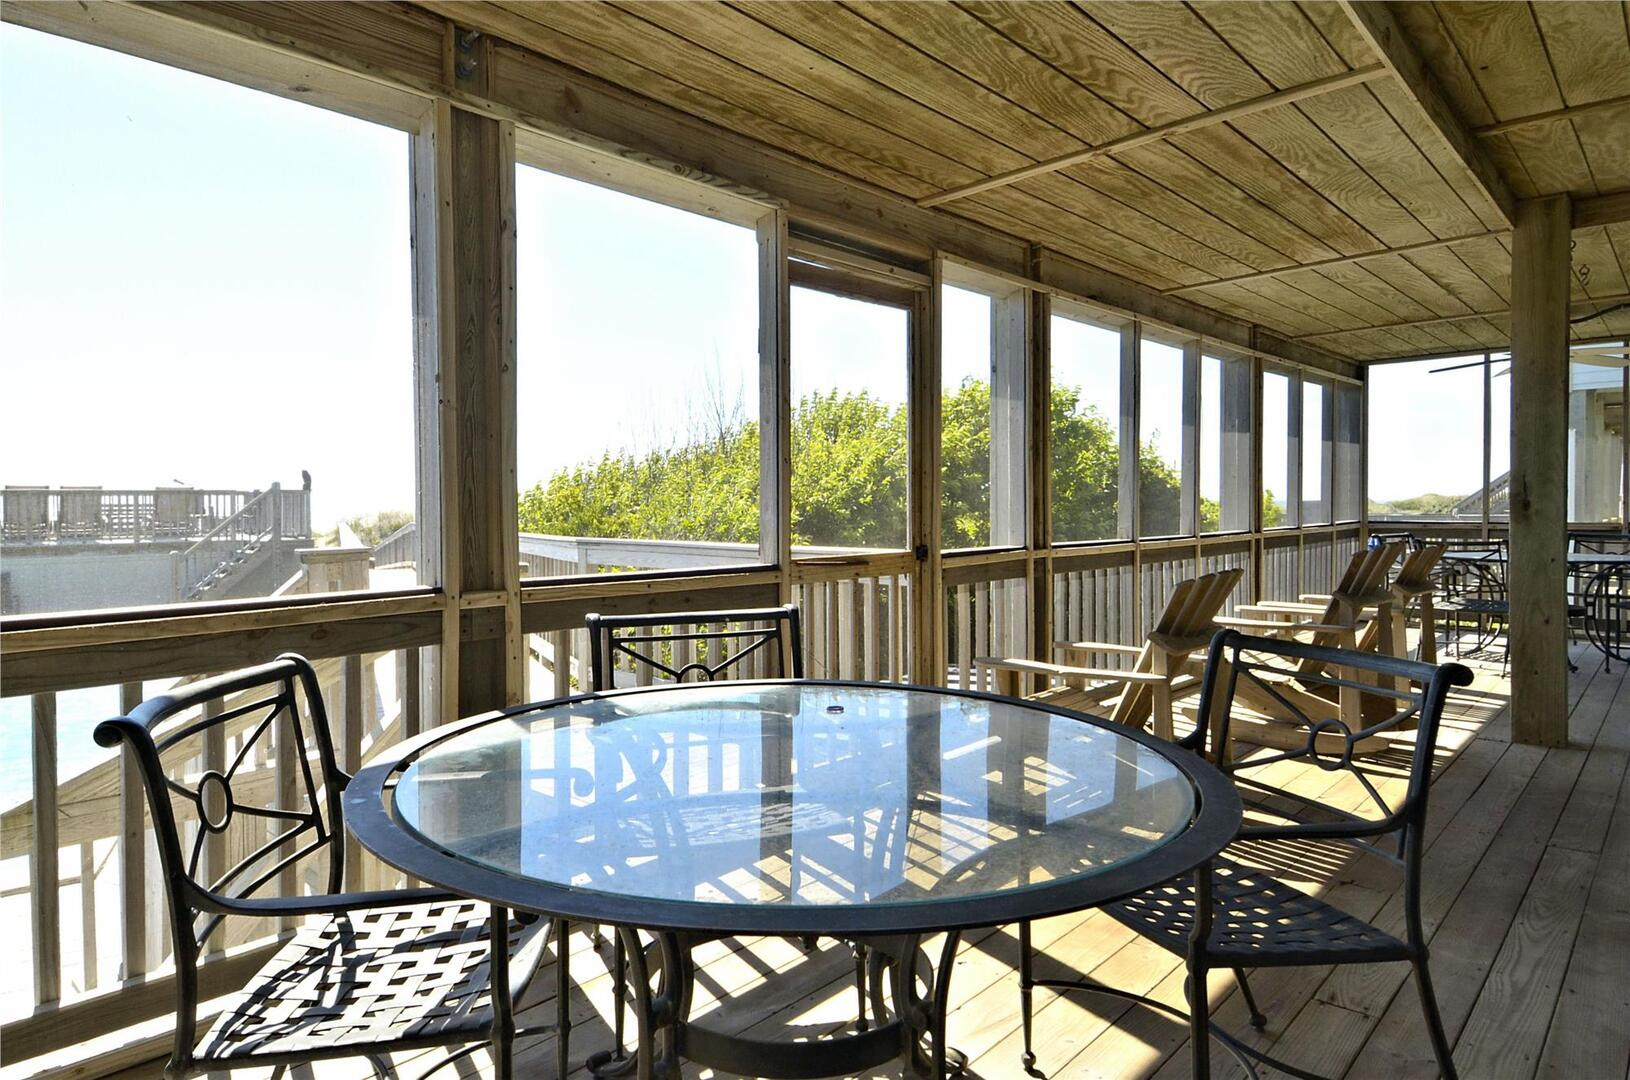 Entry Level,Screened Porch,